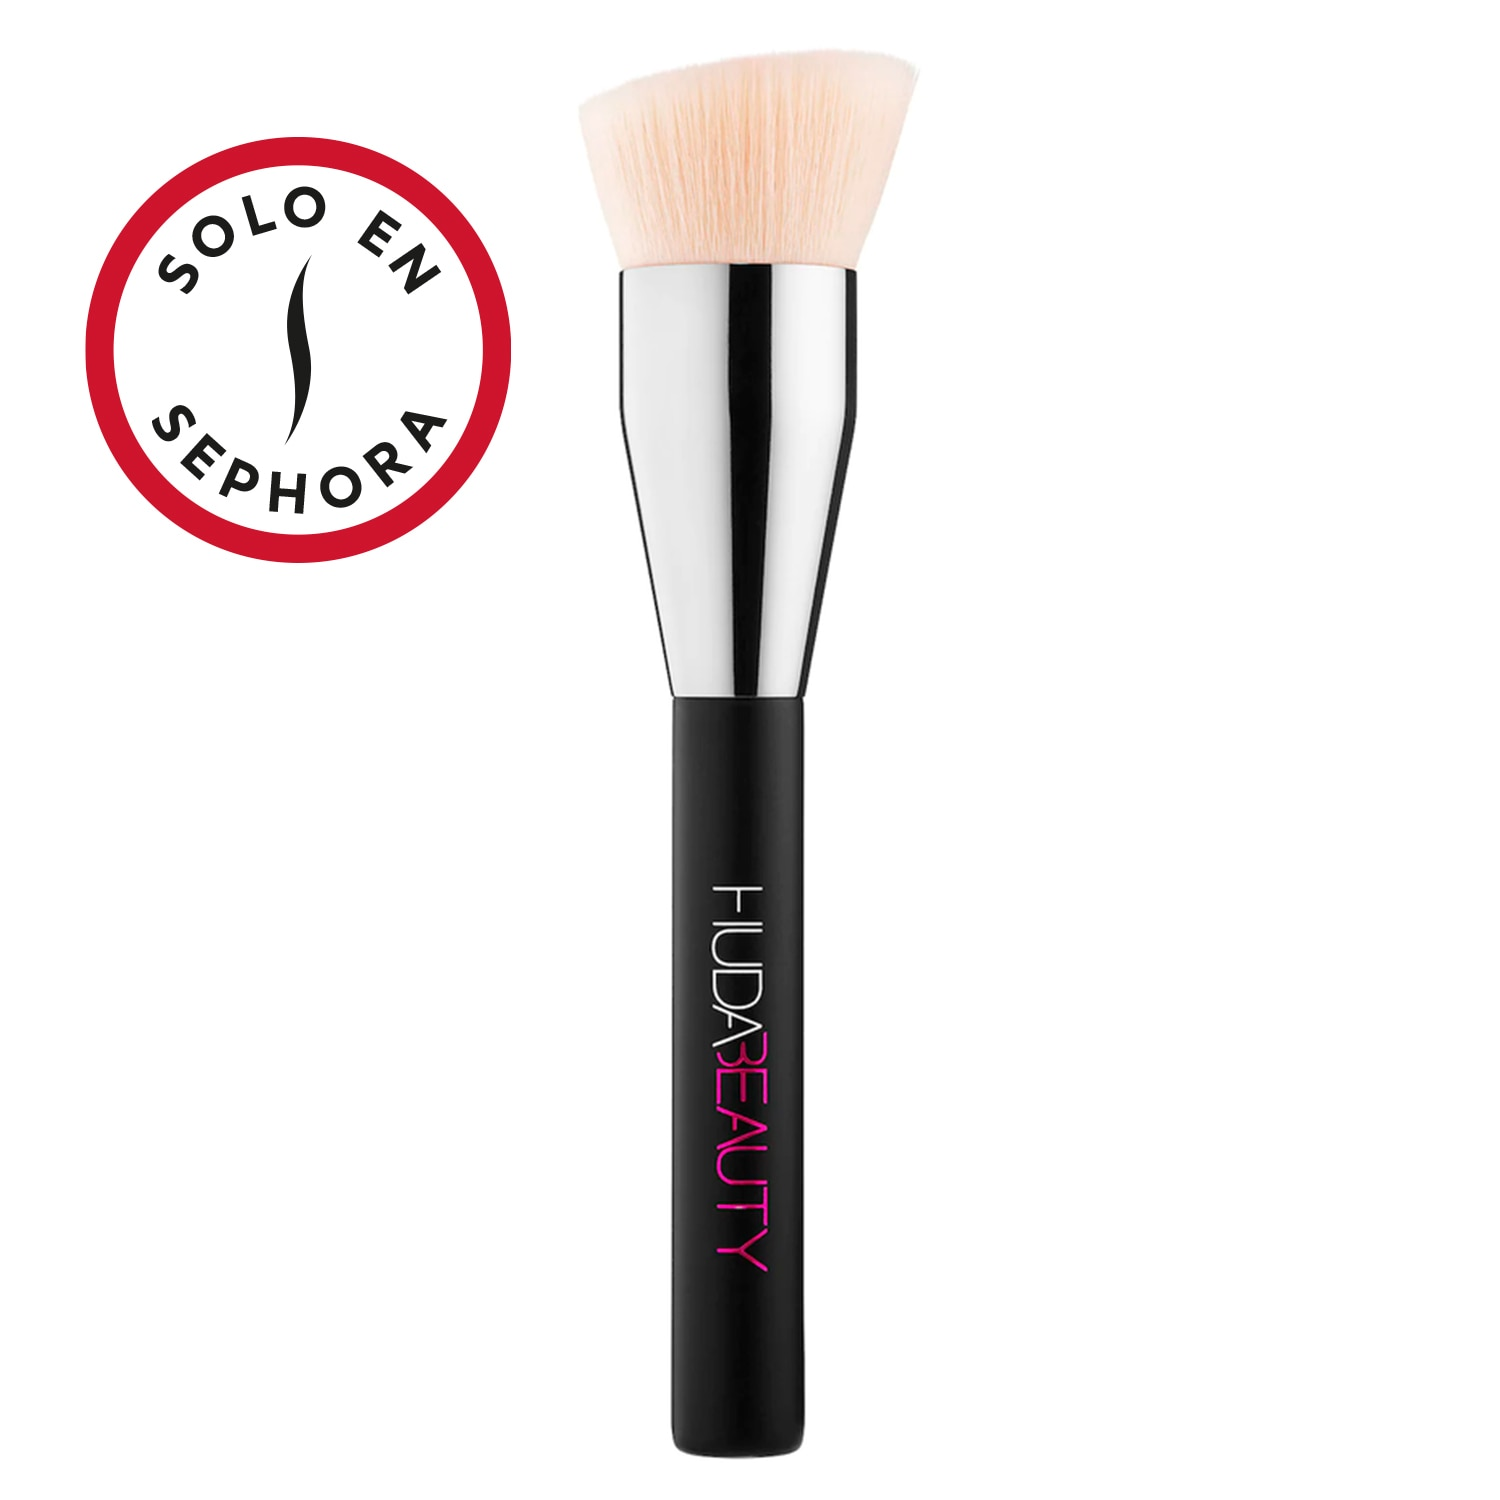 BUFF BLEND BRUSH (BROCHA PARA BASE)